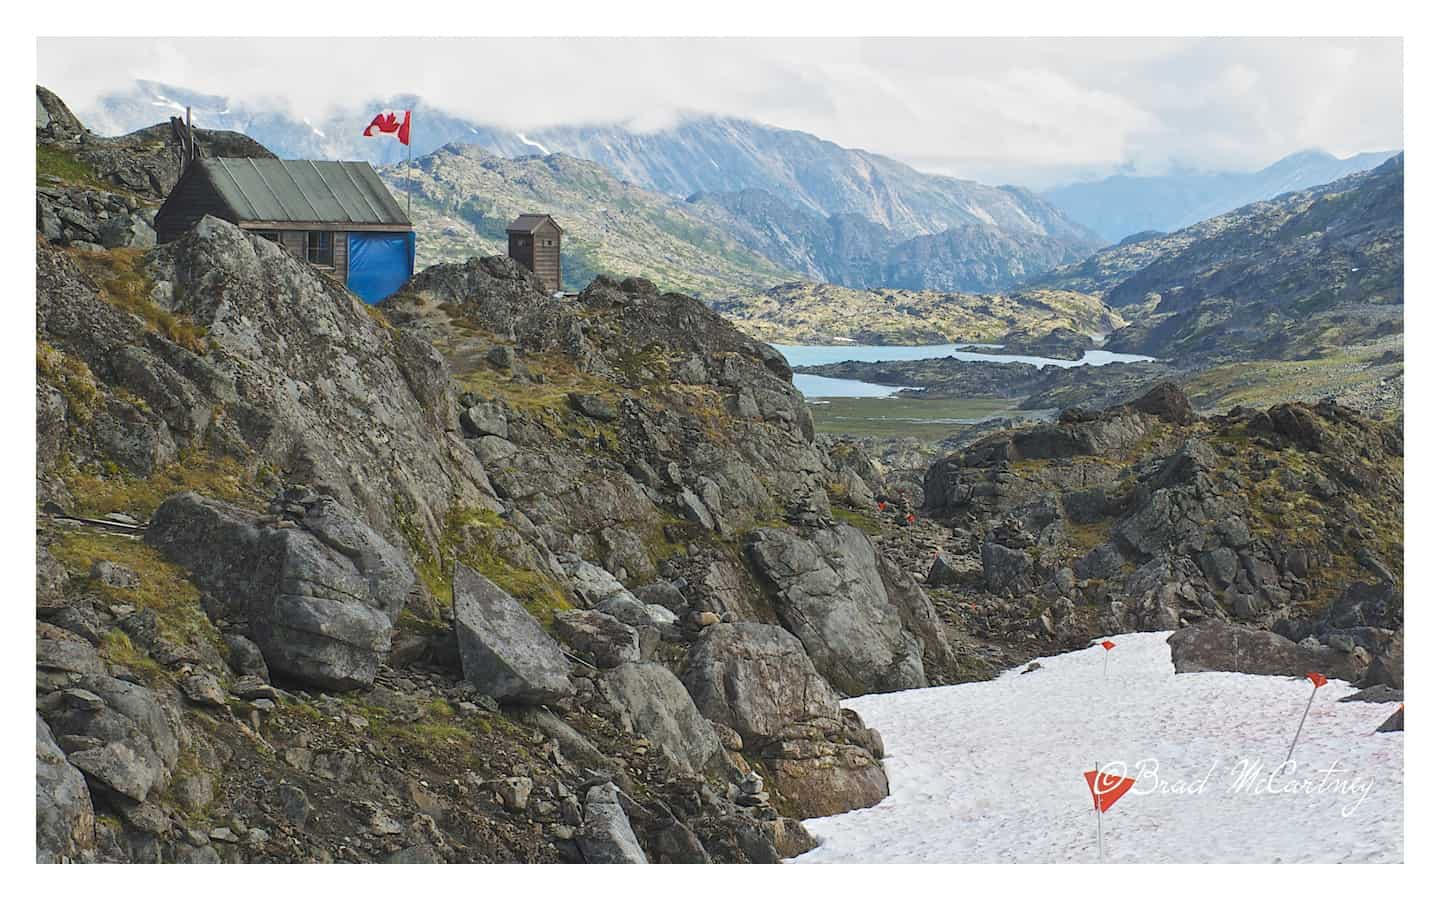 Top of the Chilkoot pass looking into Canada and a small shelter to rest